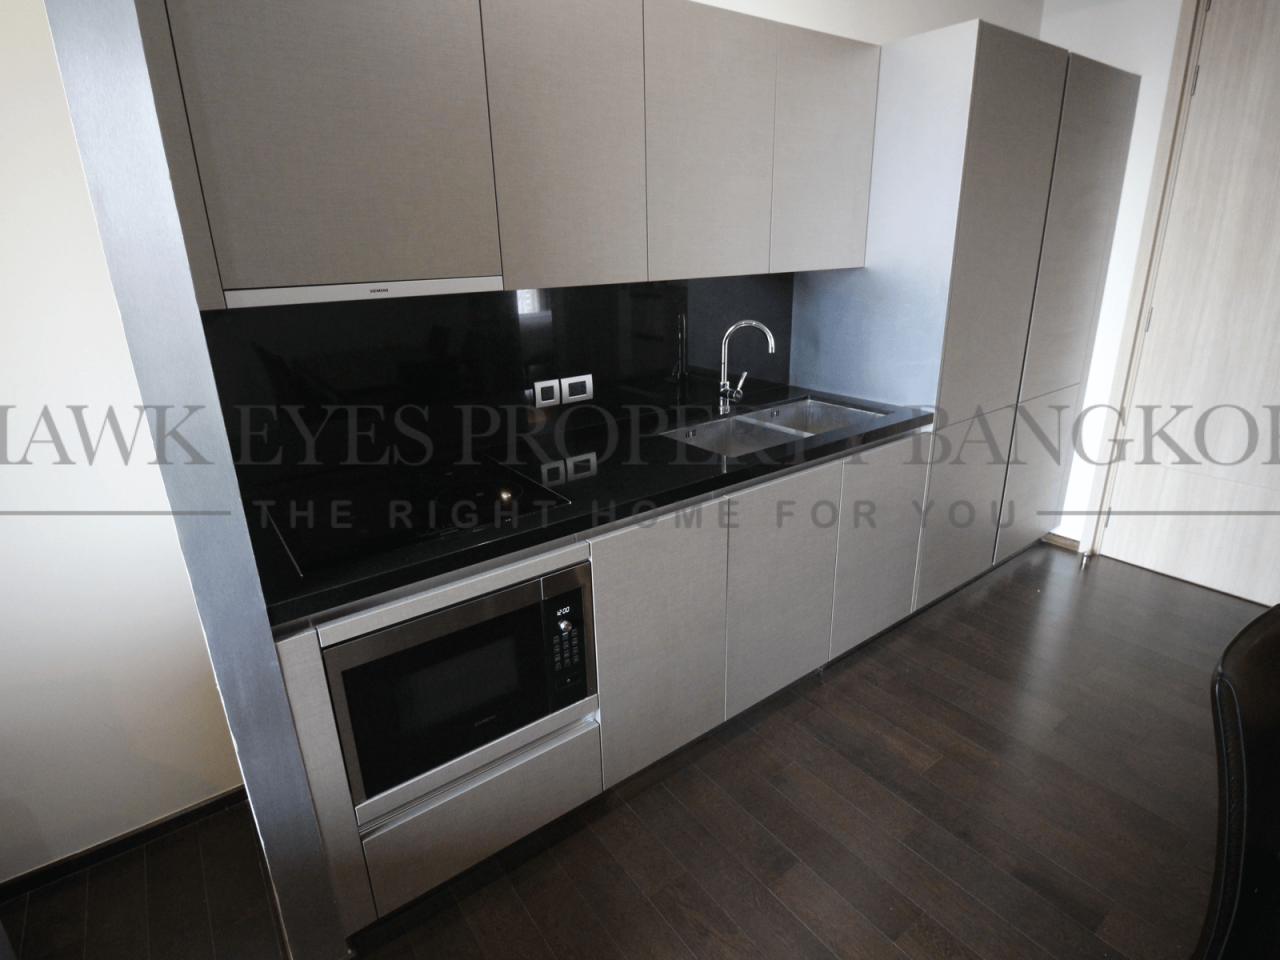 Hawk Eyes Property Bangkok Co.,Ltd. Agency's 2 bedrooms 2 bathrooms in Prompong, The XXXIX for rent 6